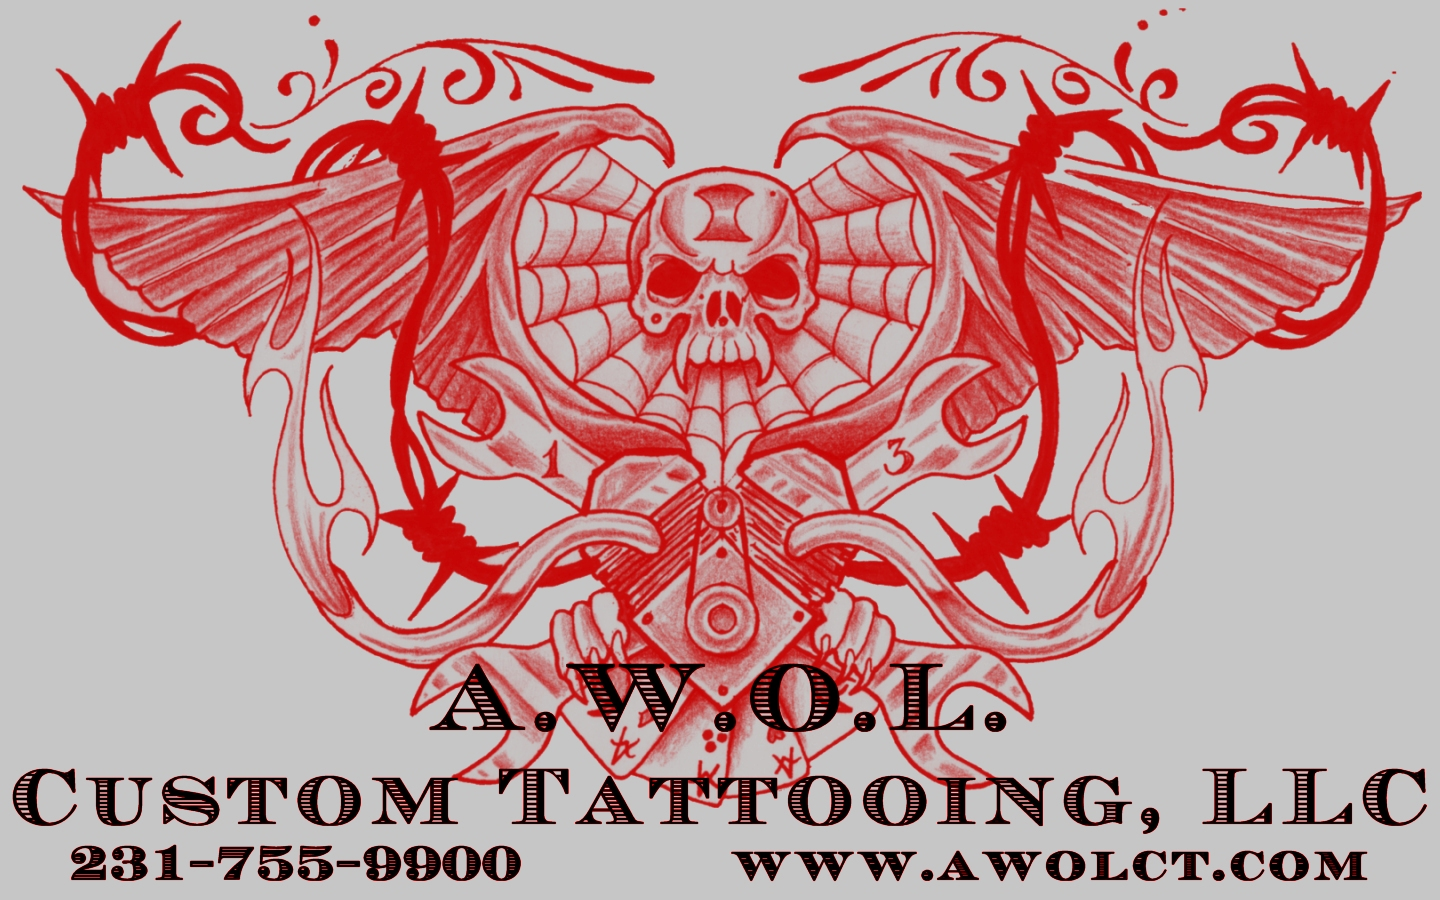 Media_A.W.O.L. Custom Tattooing, LLC located in Muskegon, Michigan ...